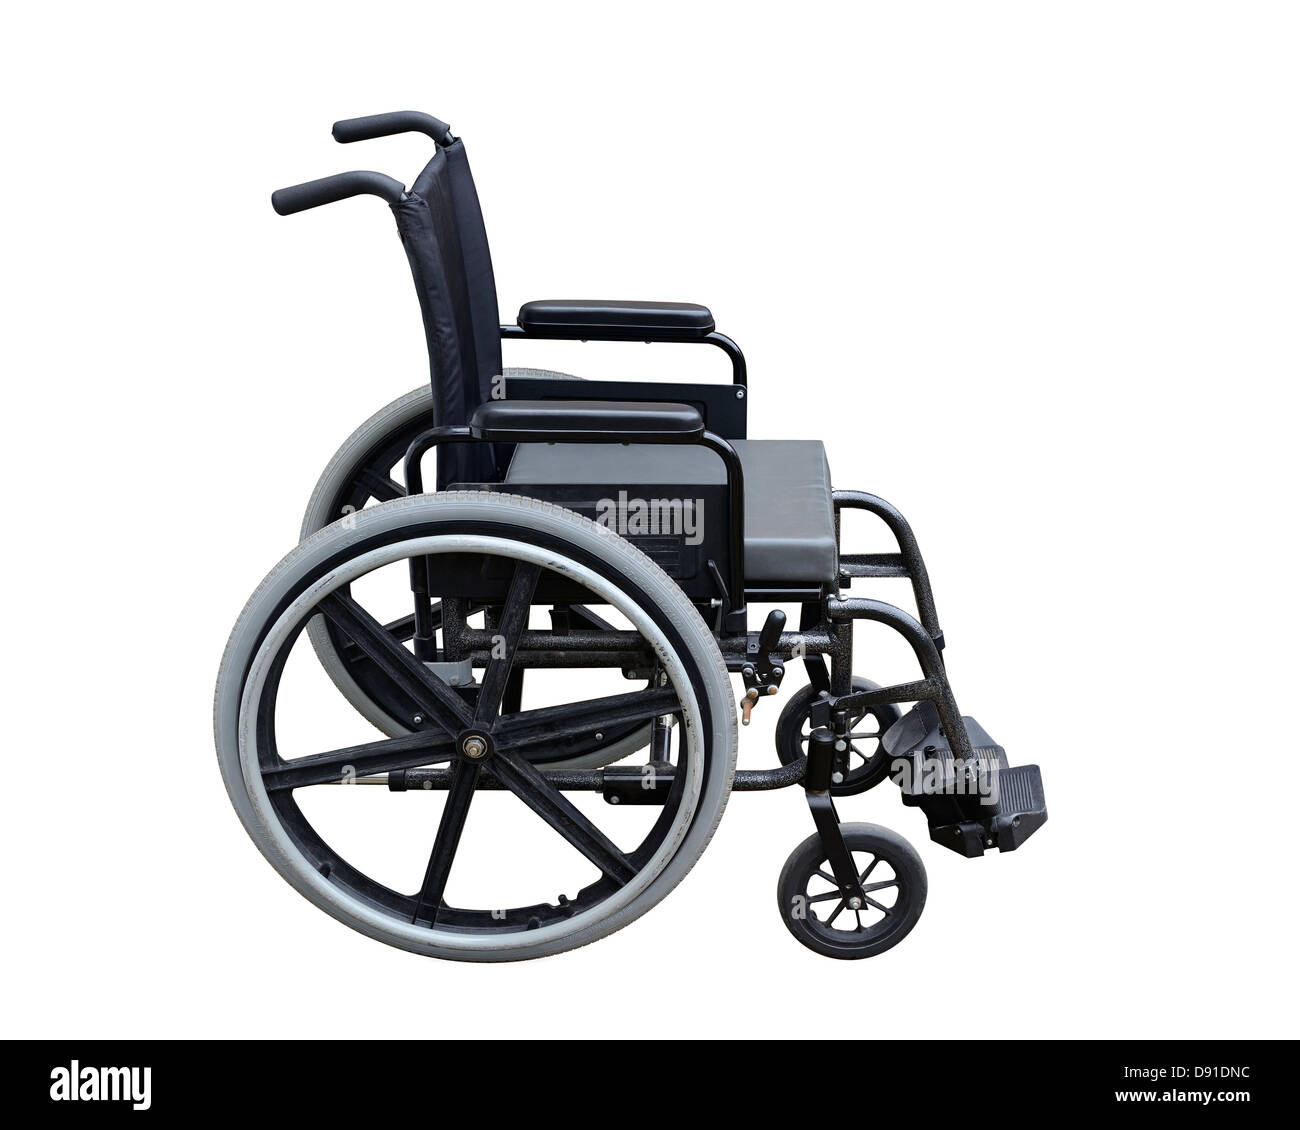 Wheelchair, Cut Out. - Stock Image